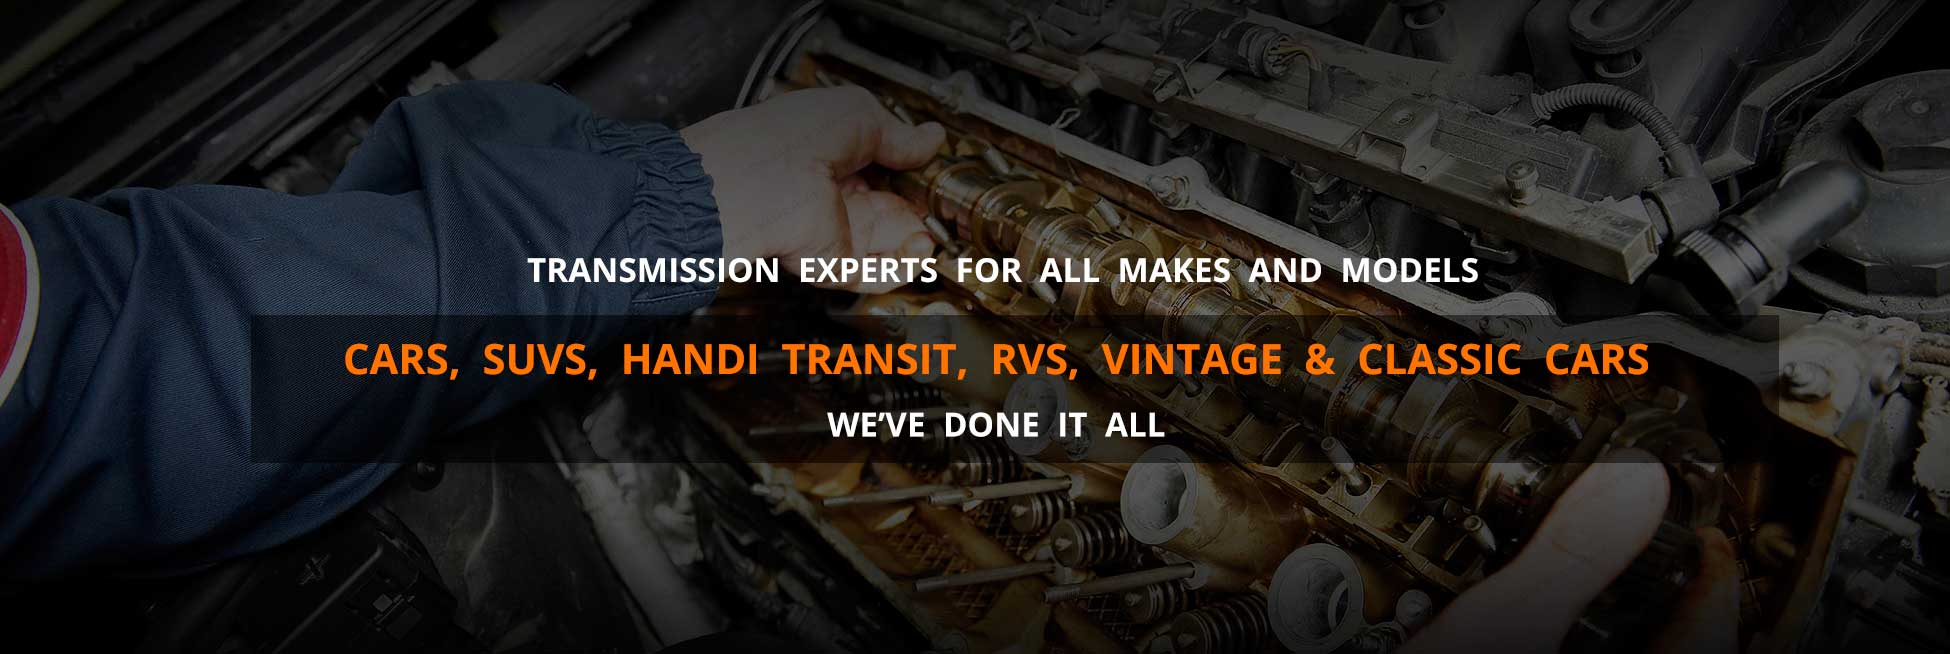 Transmission Expert for all makes and models